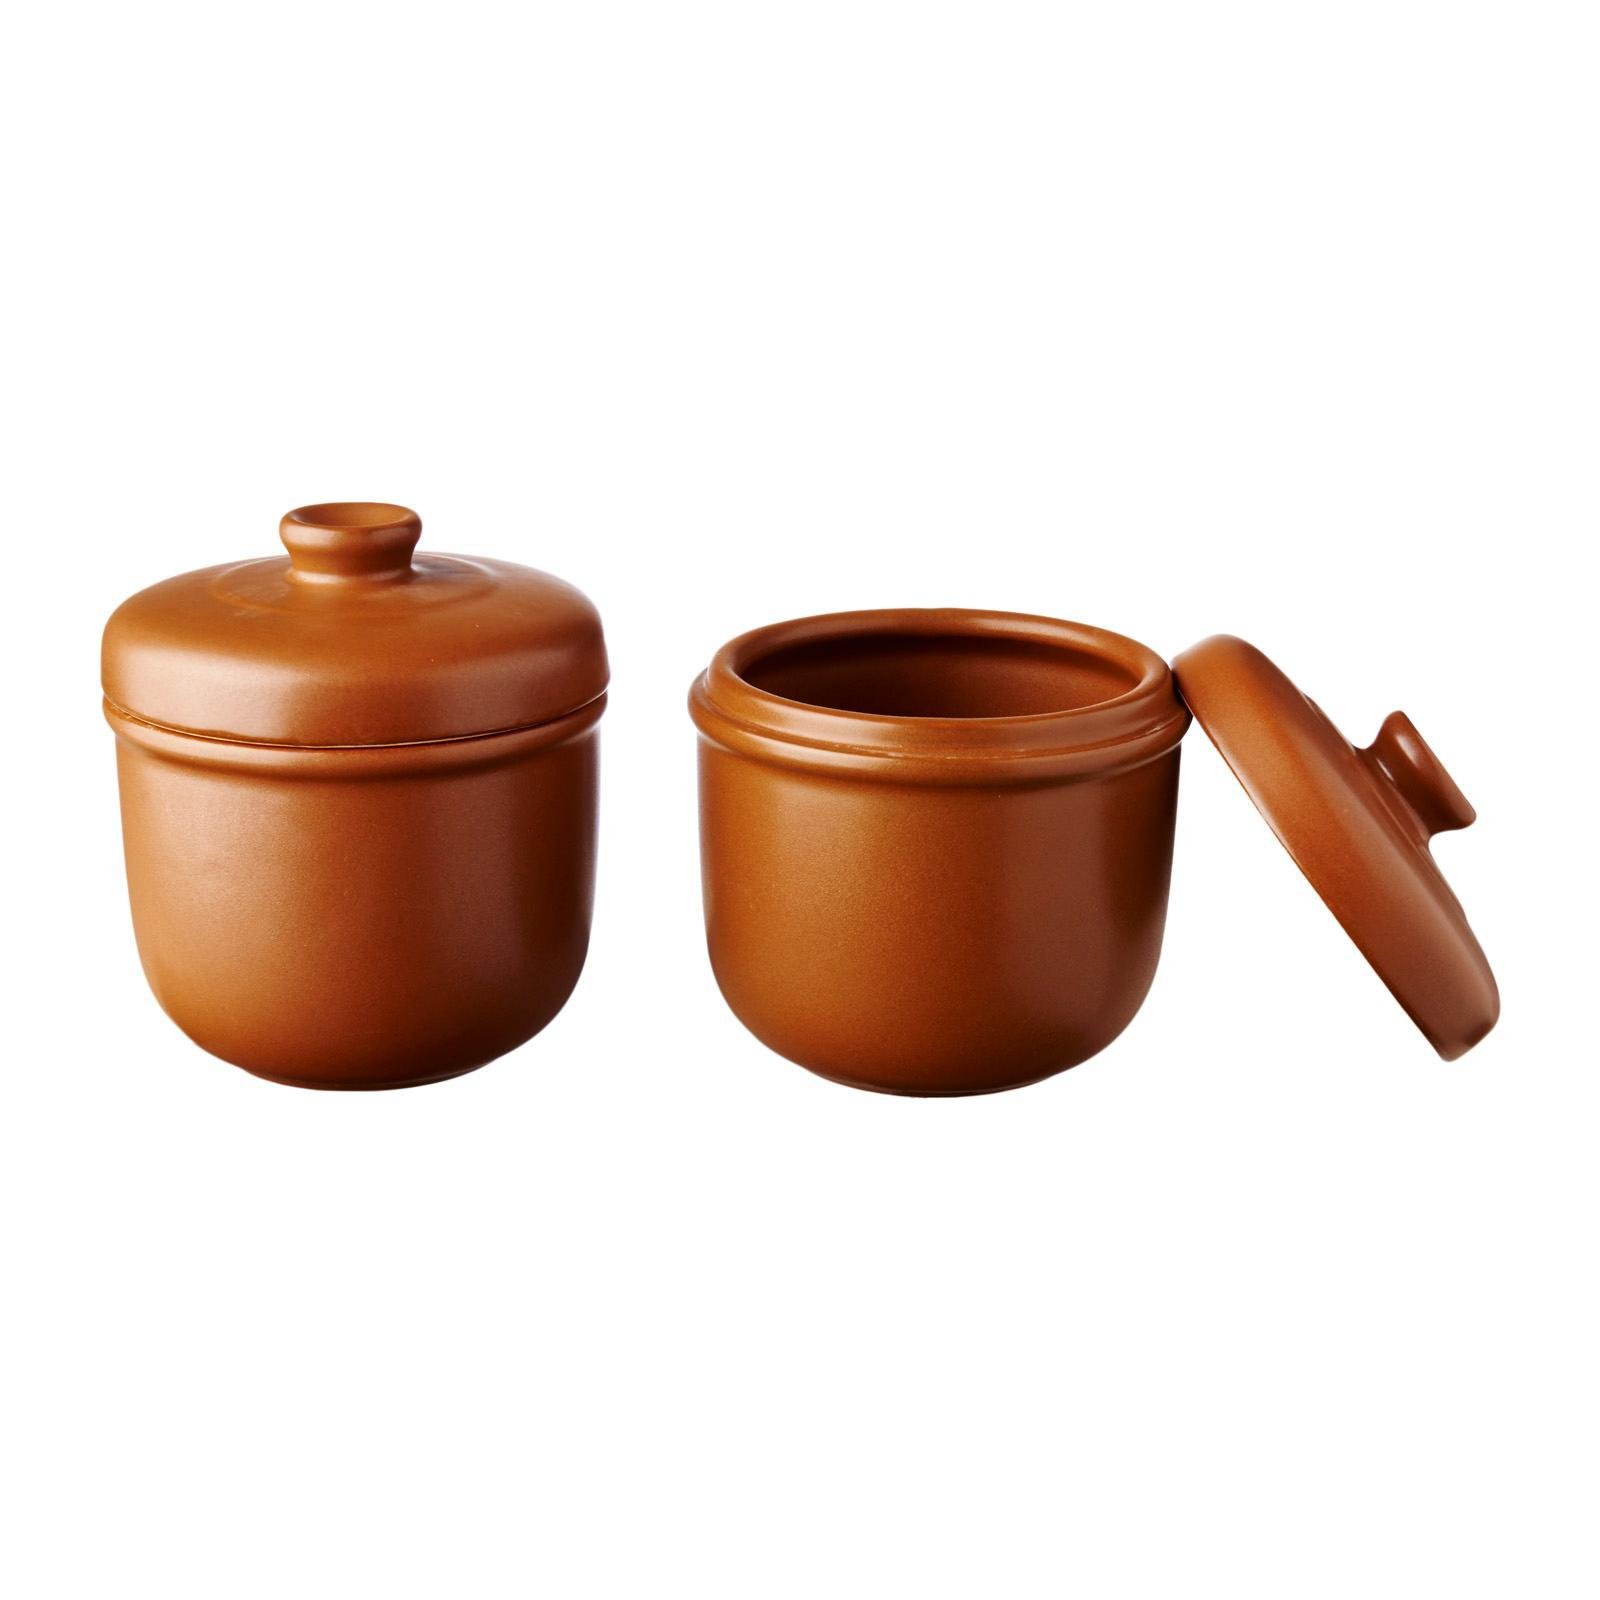 Tanyu 2 Pieces D/Boil Container - Brown Cookware